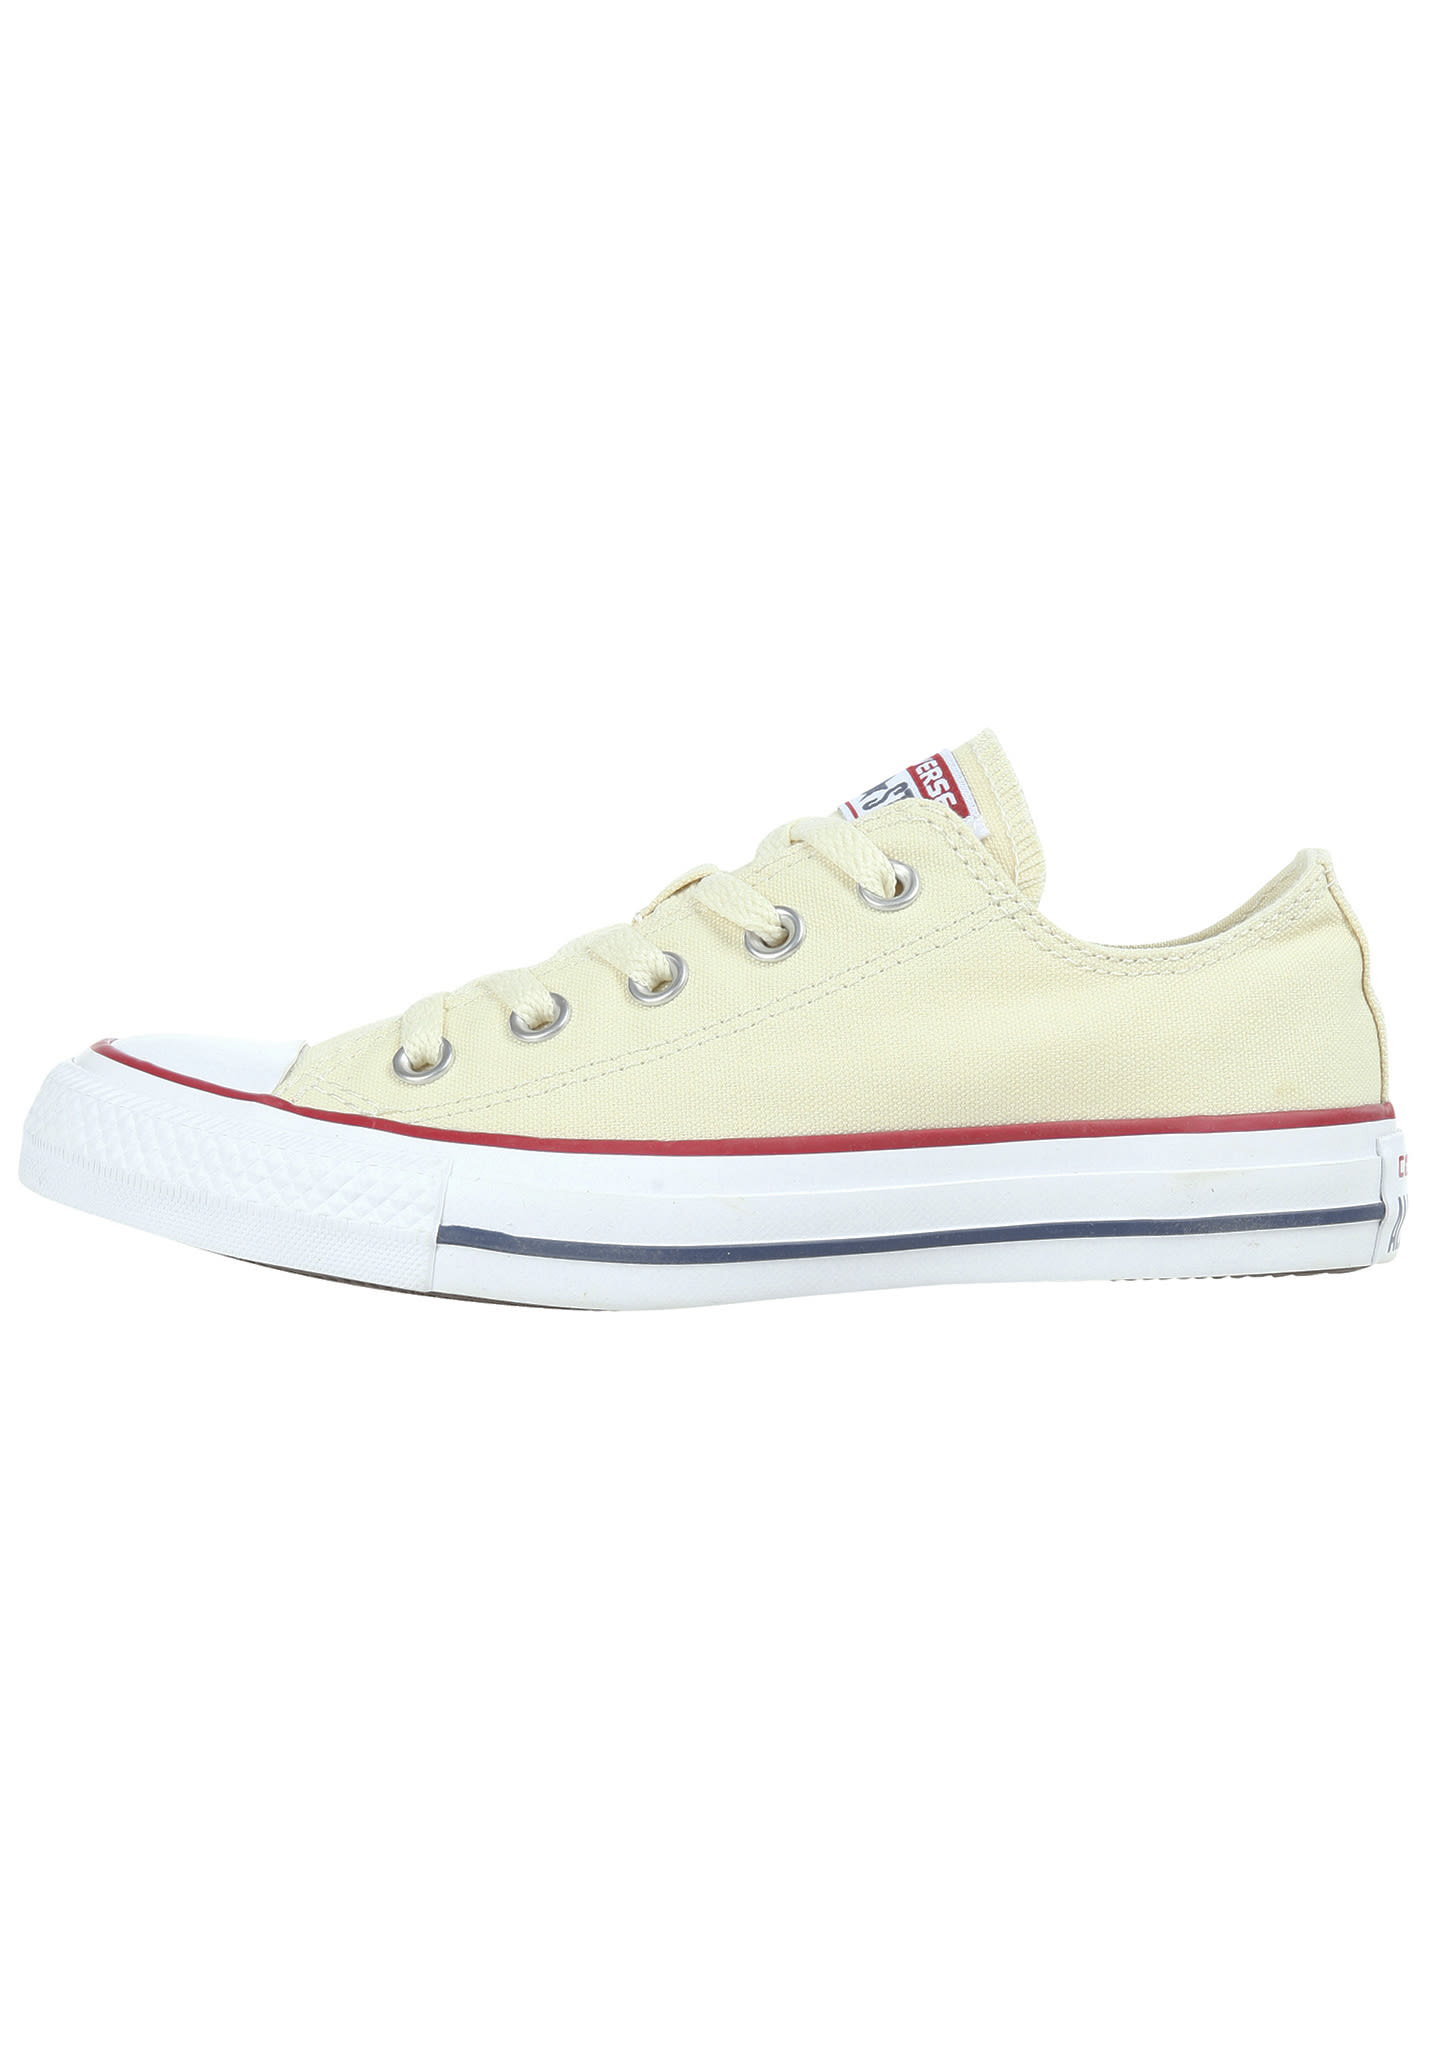 011f01d63d2d2 Converse Chuck Taylor All Star OX - Sneaker - Gelb - Planet Sports